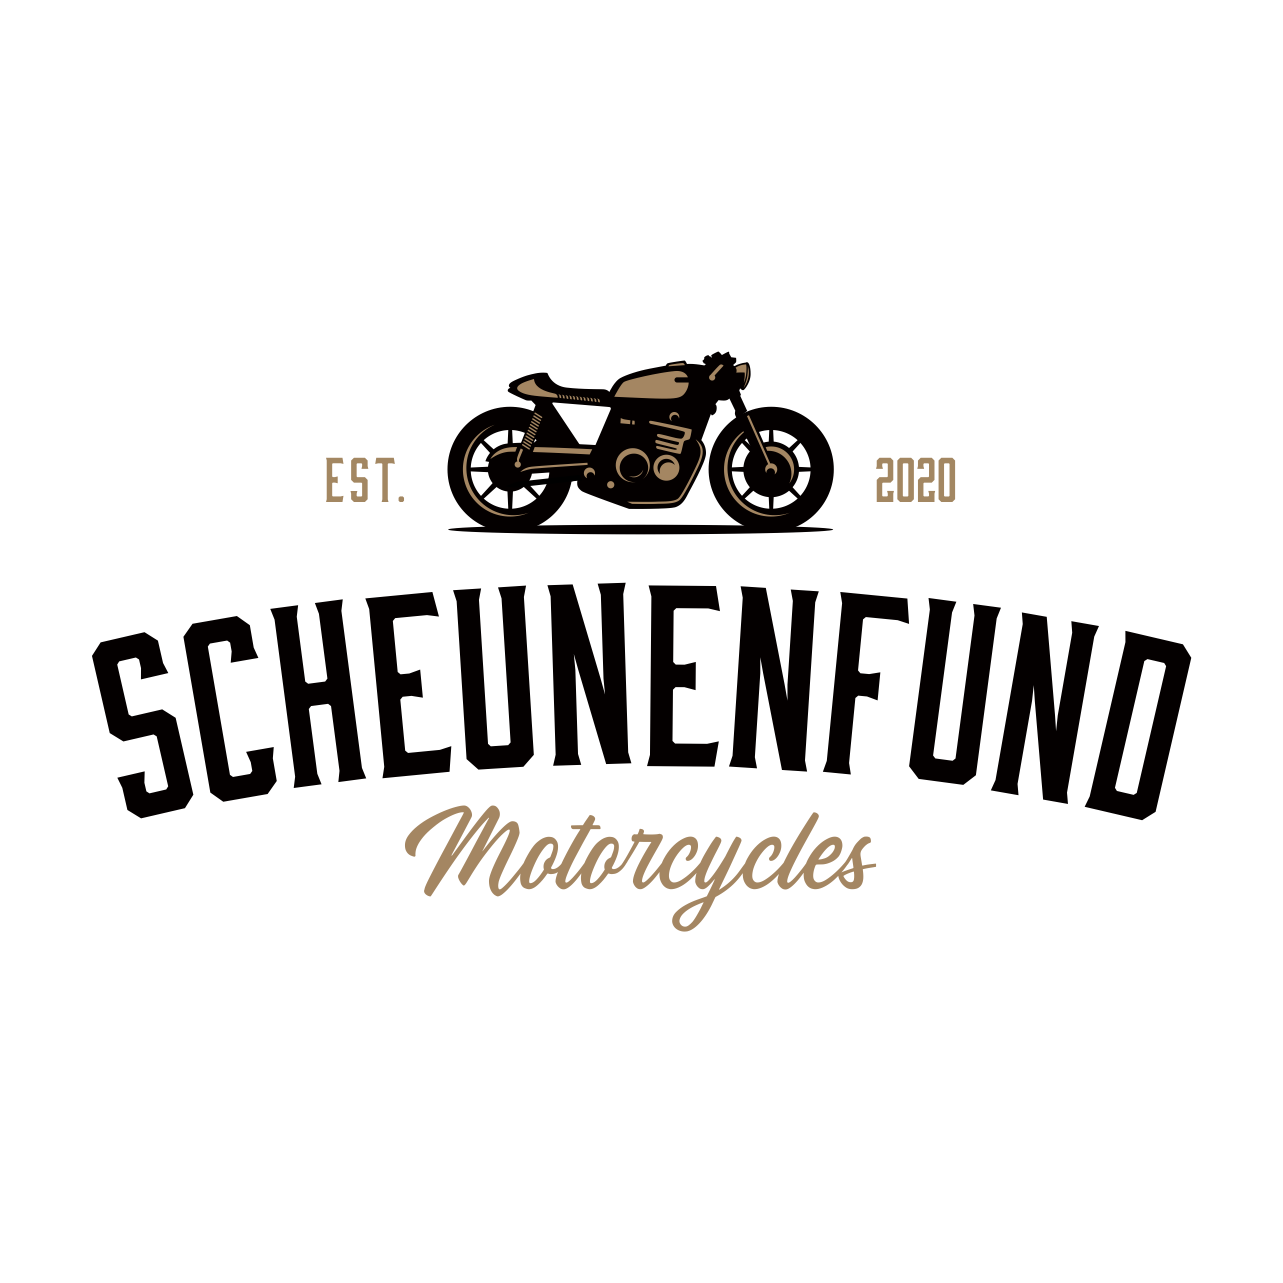 Design a vintage logo for a motorcycle restoration company